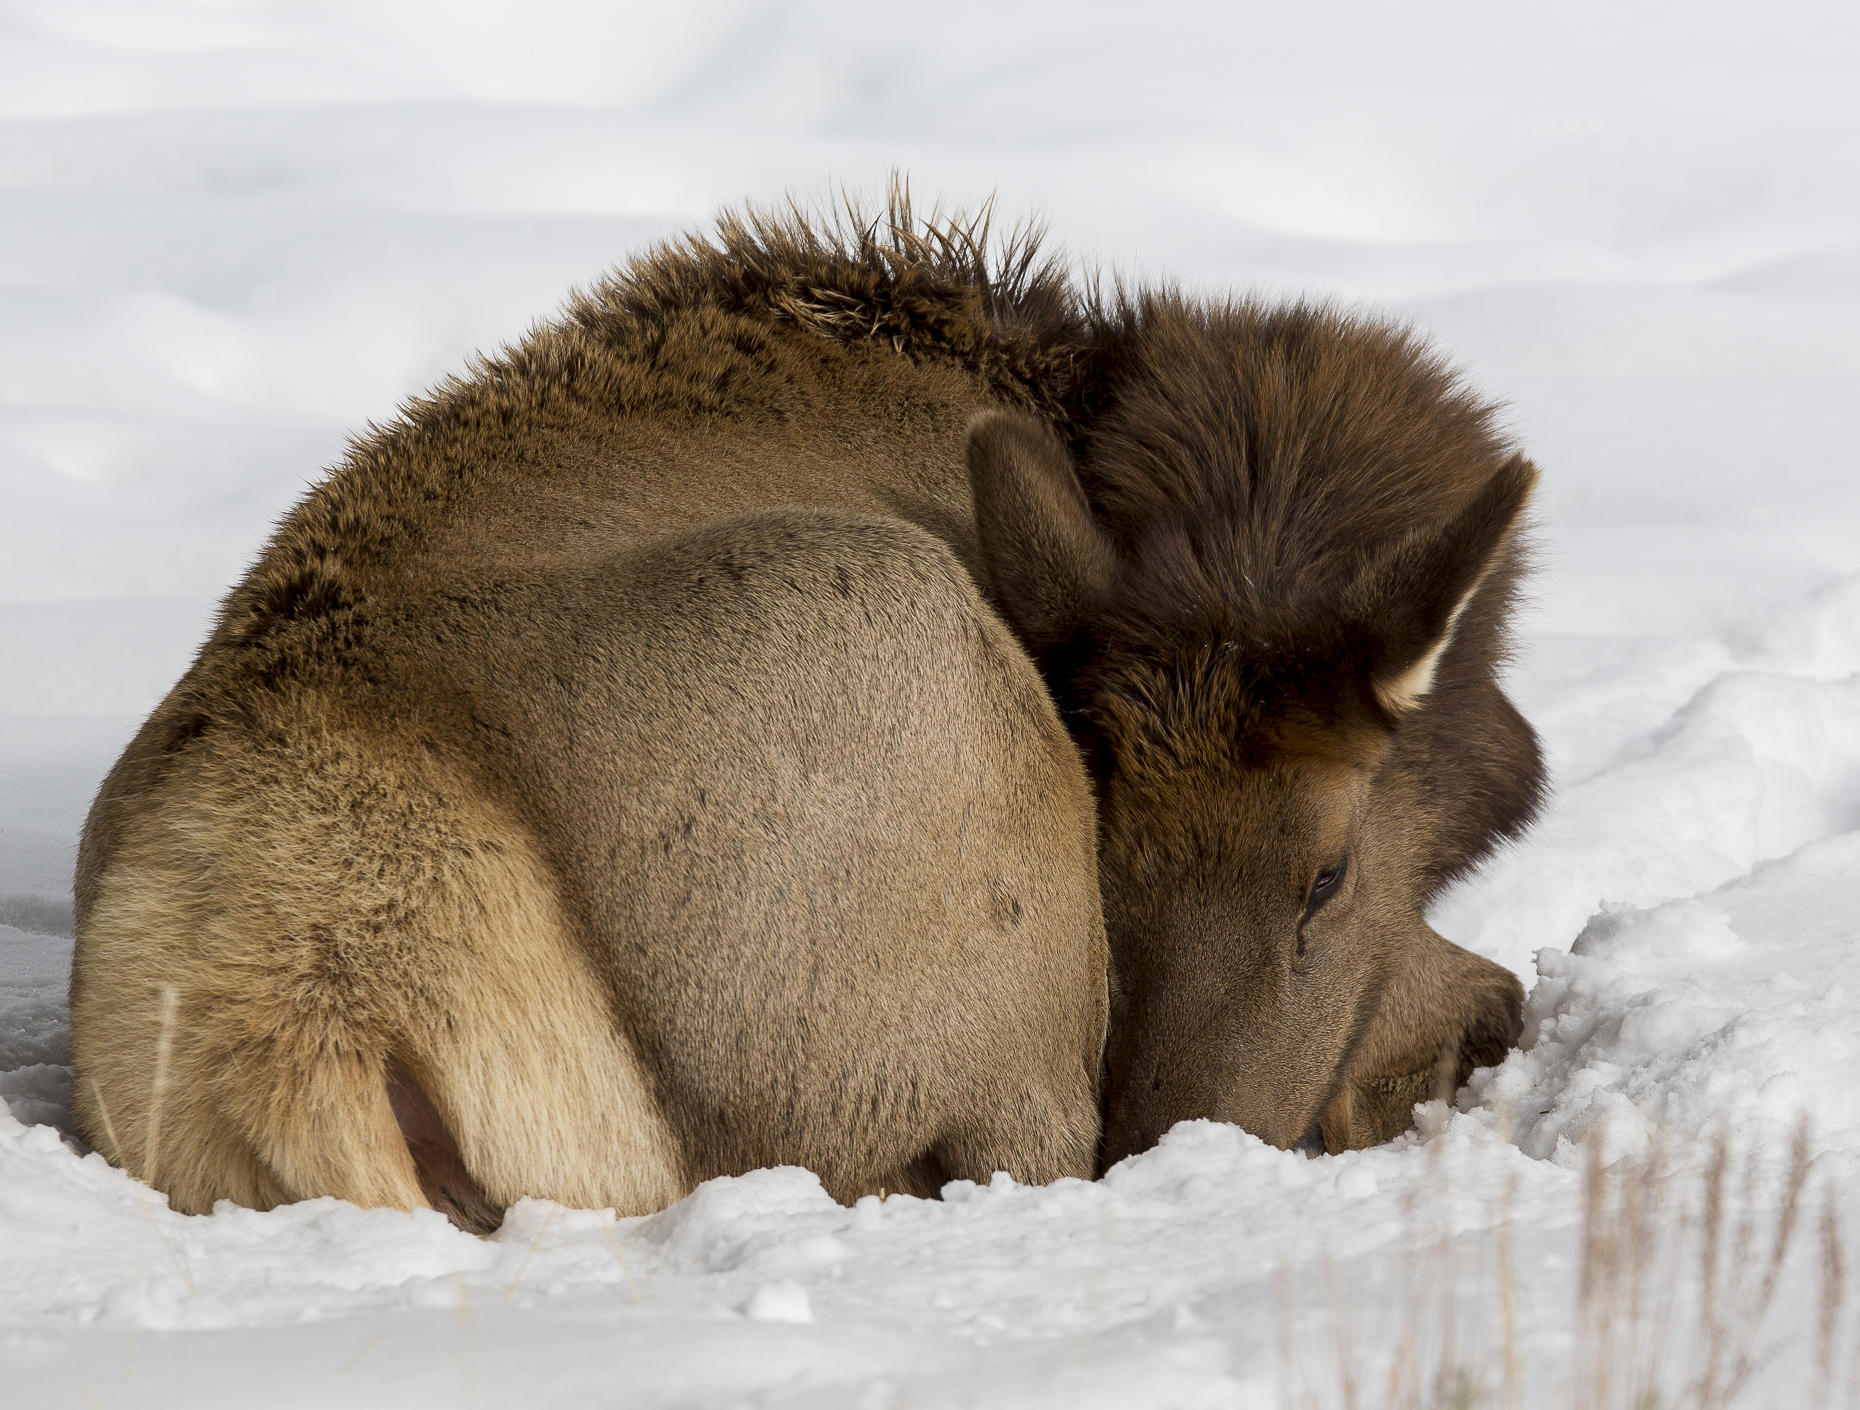 Yellowstone Animals (1 of 35).jpg